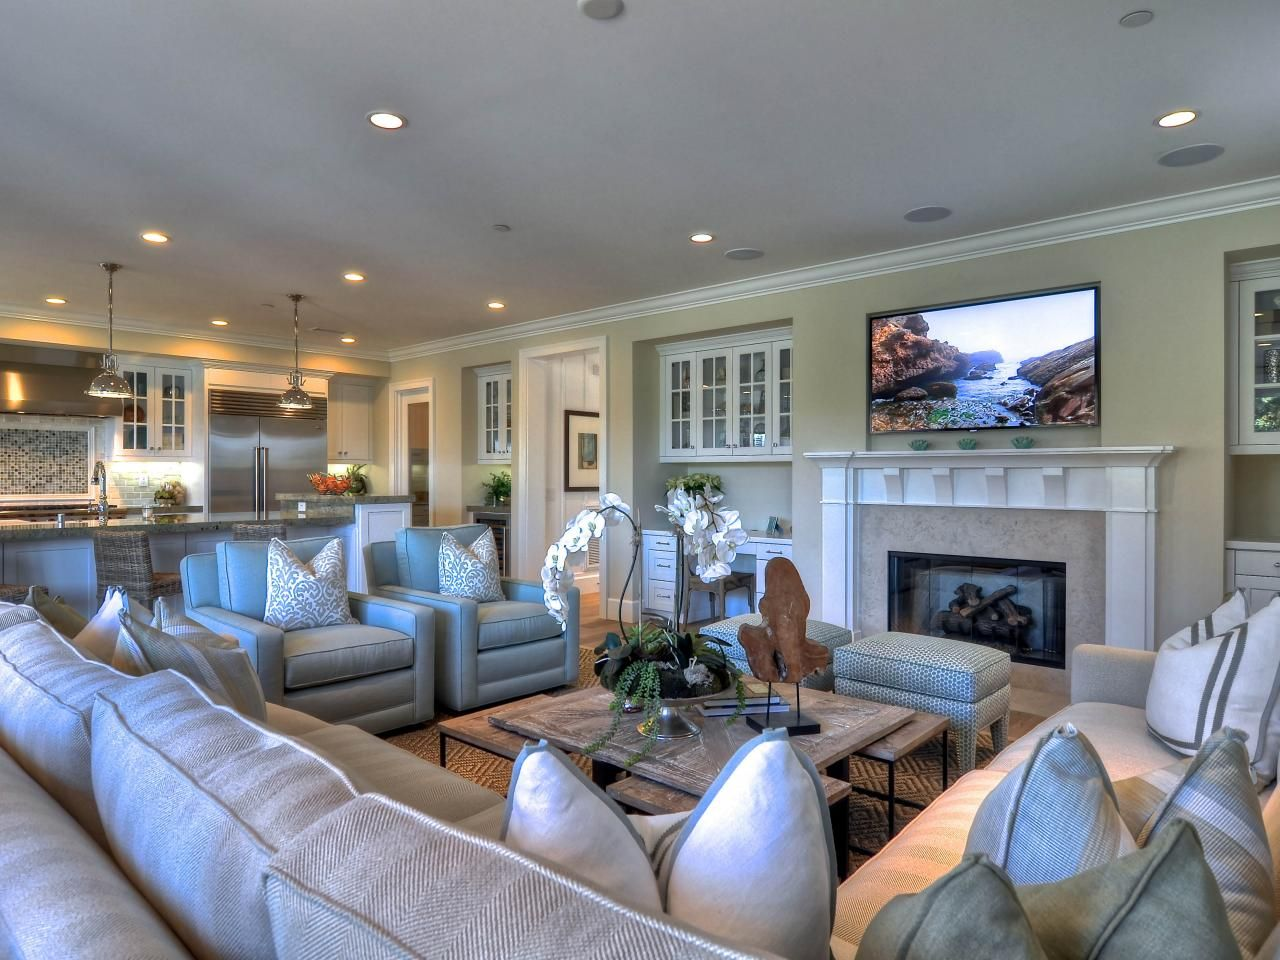 Coastal decor is found in the details in this spacious for Great room addition off kitchen